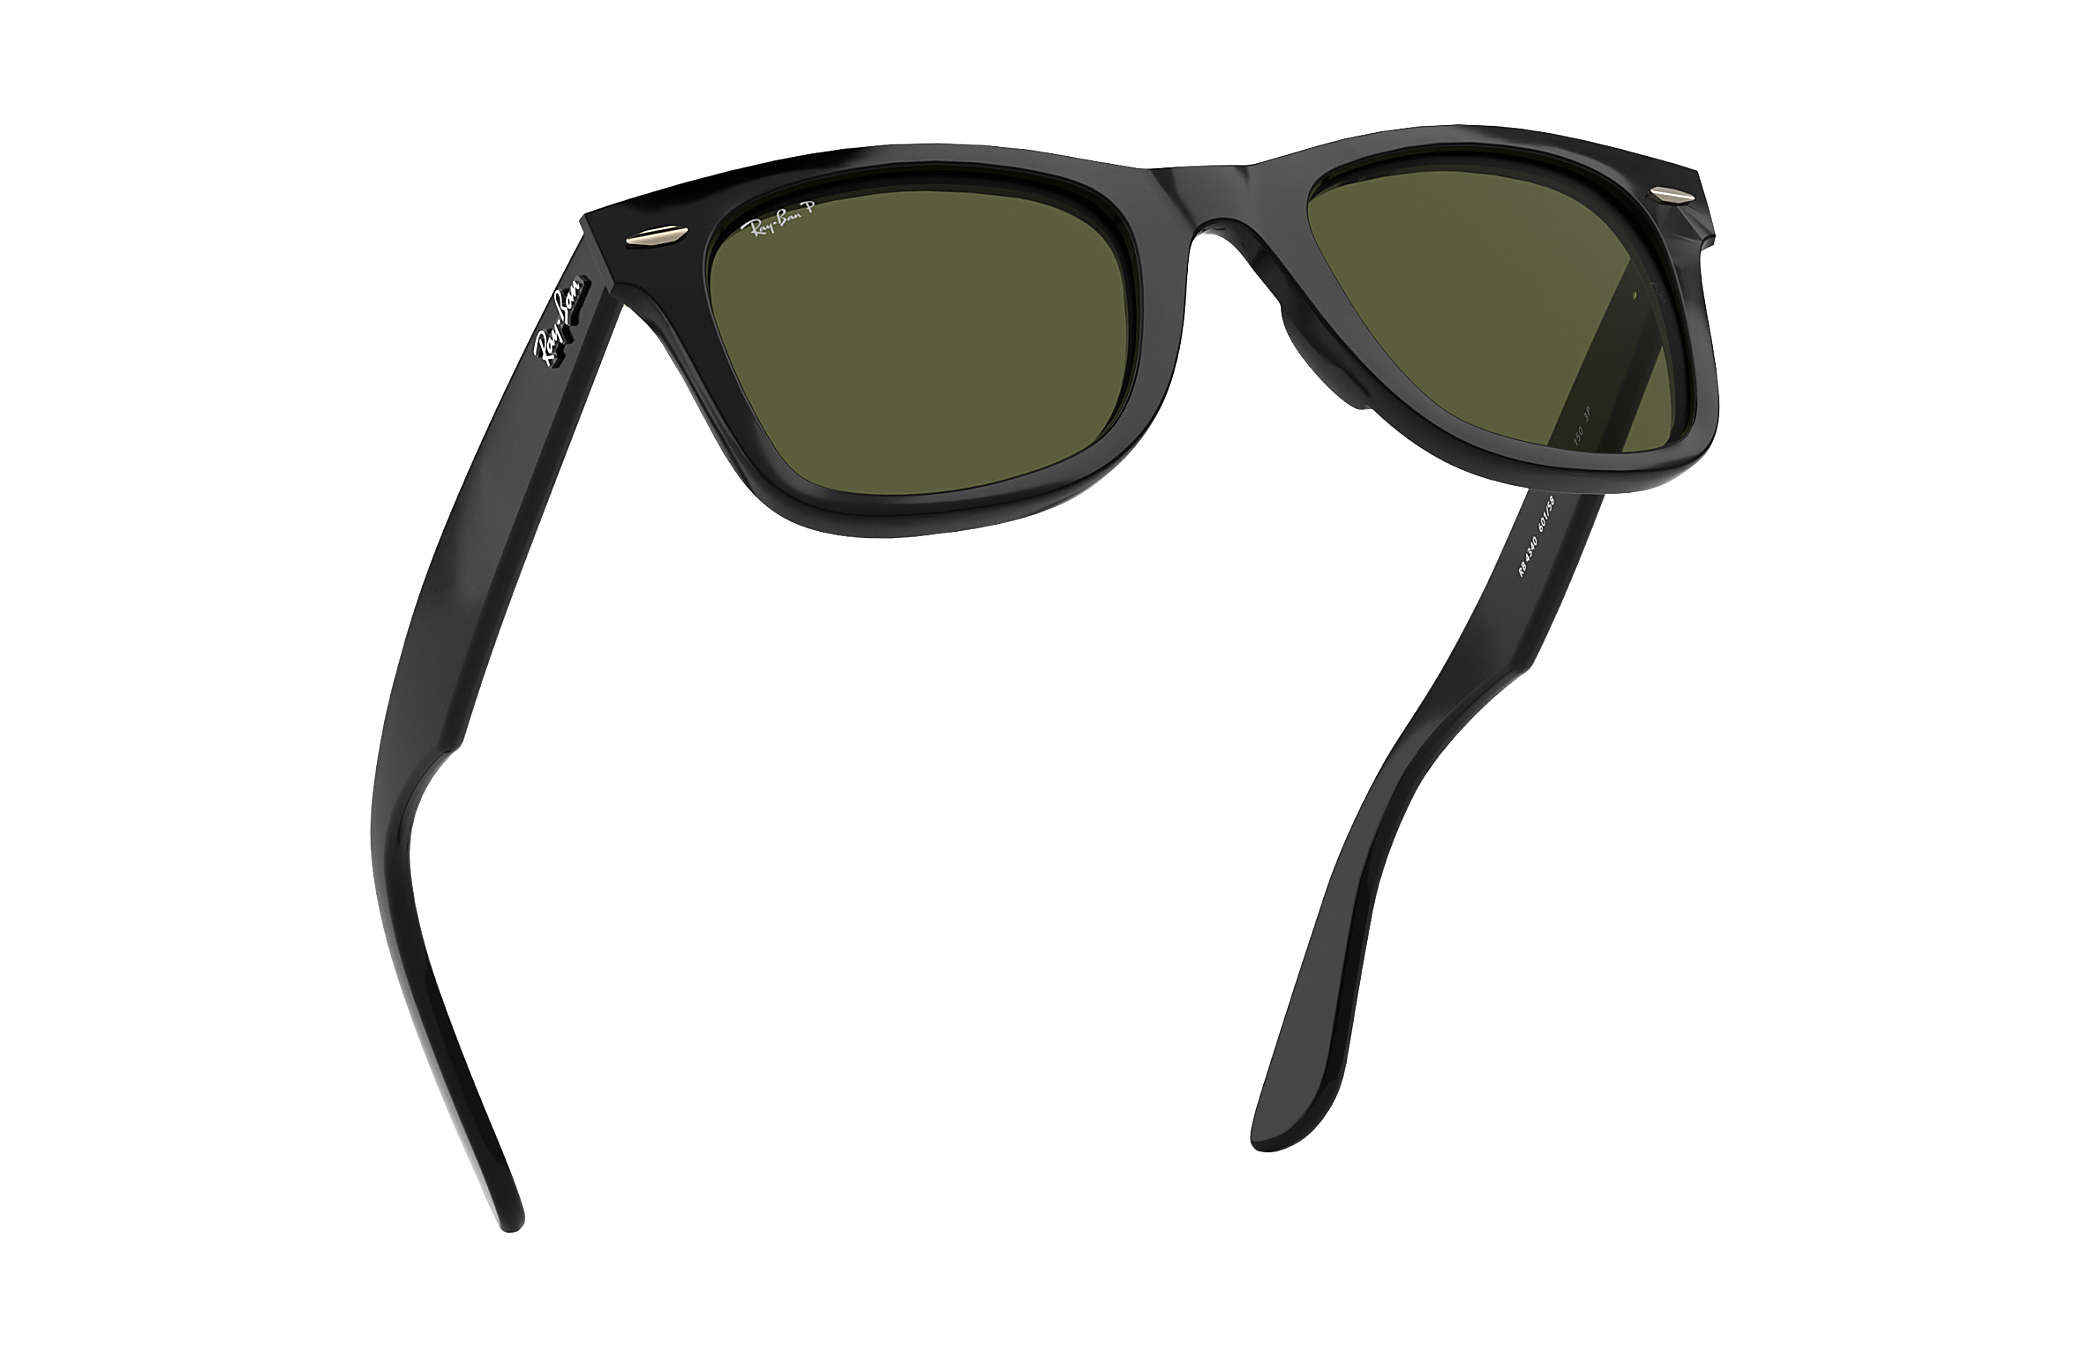 d28f233be5 Ray-Ban Wayfarer Ease RB4340 Black - Injected - Green Polarized ...